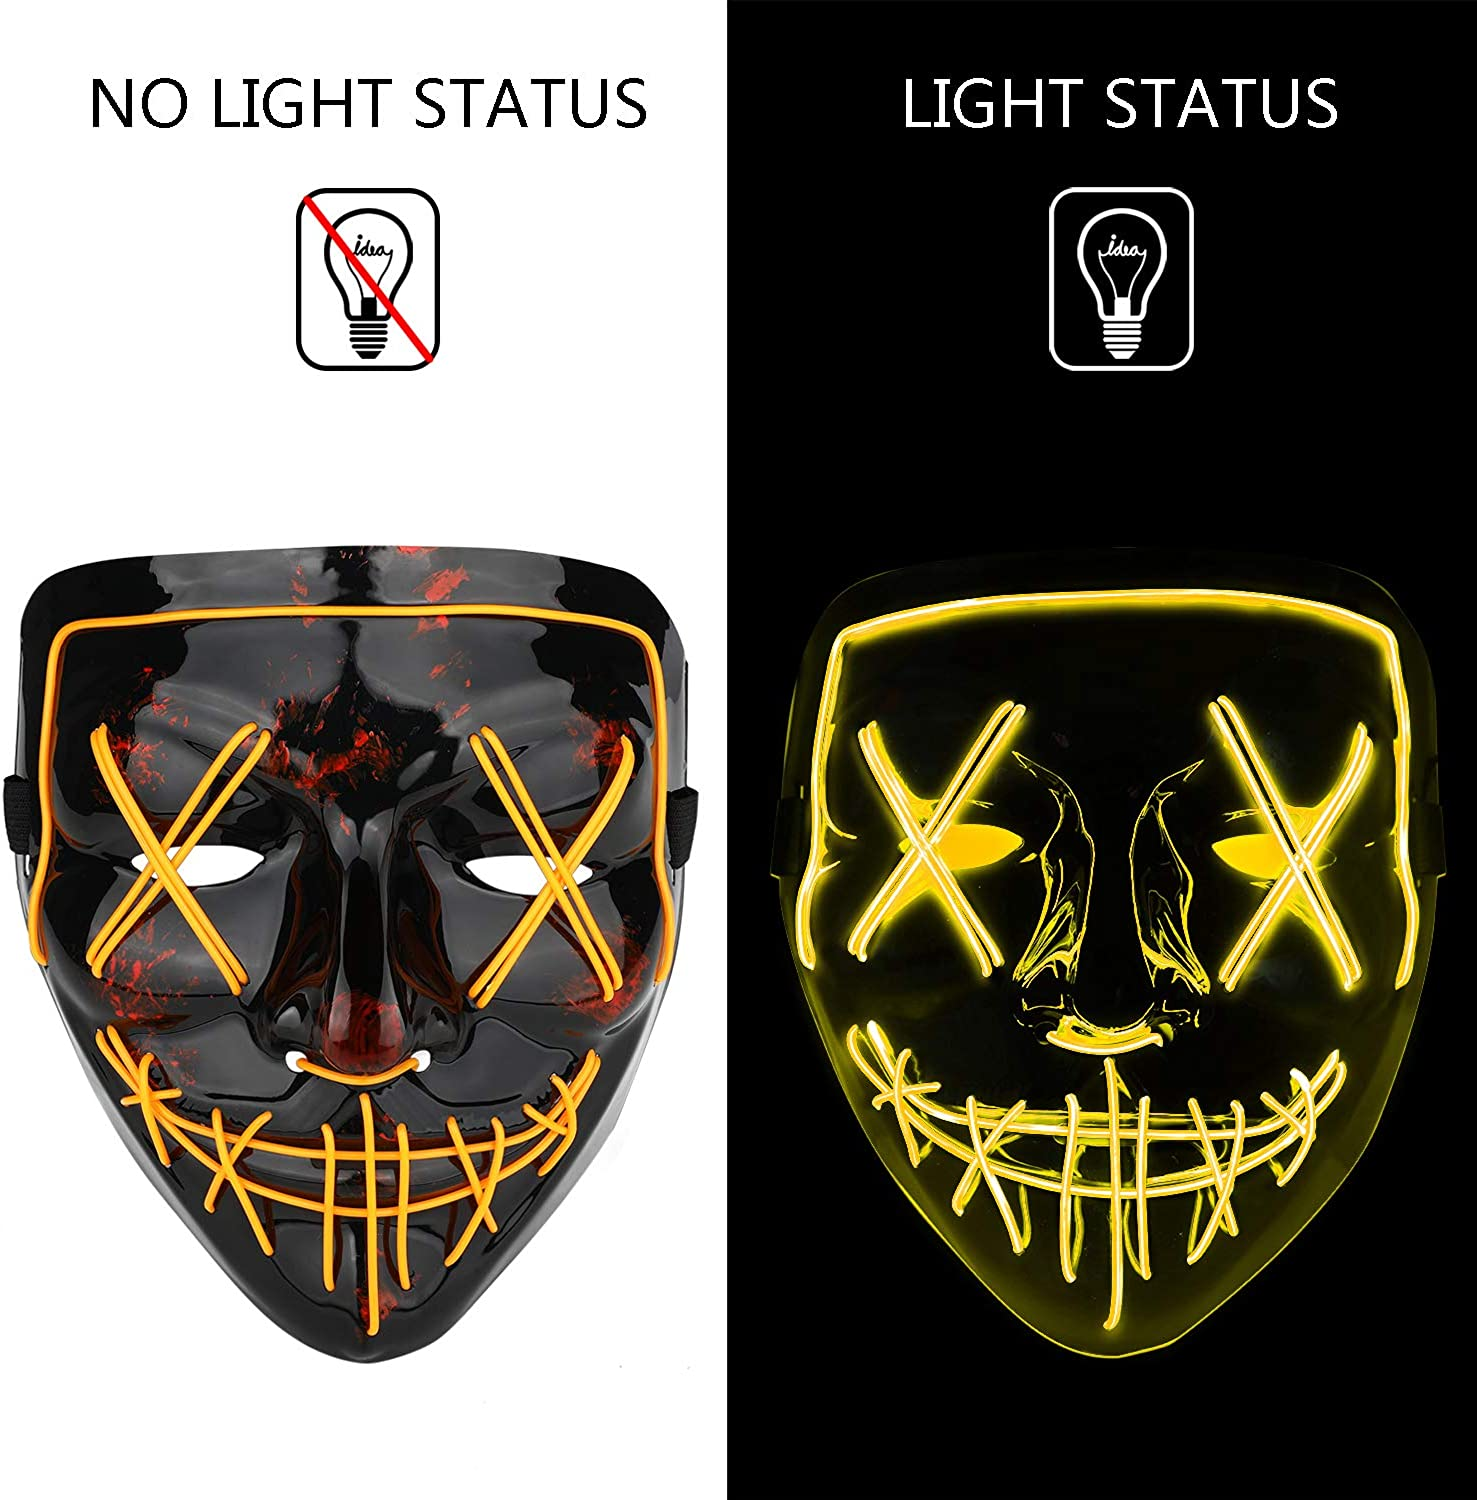 Poptrend Halloween Mask LED Light up Mask Scary mask for Festival Cosplay Halloween Costume Masquerade Parties,Carnival,Gift